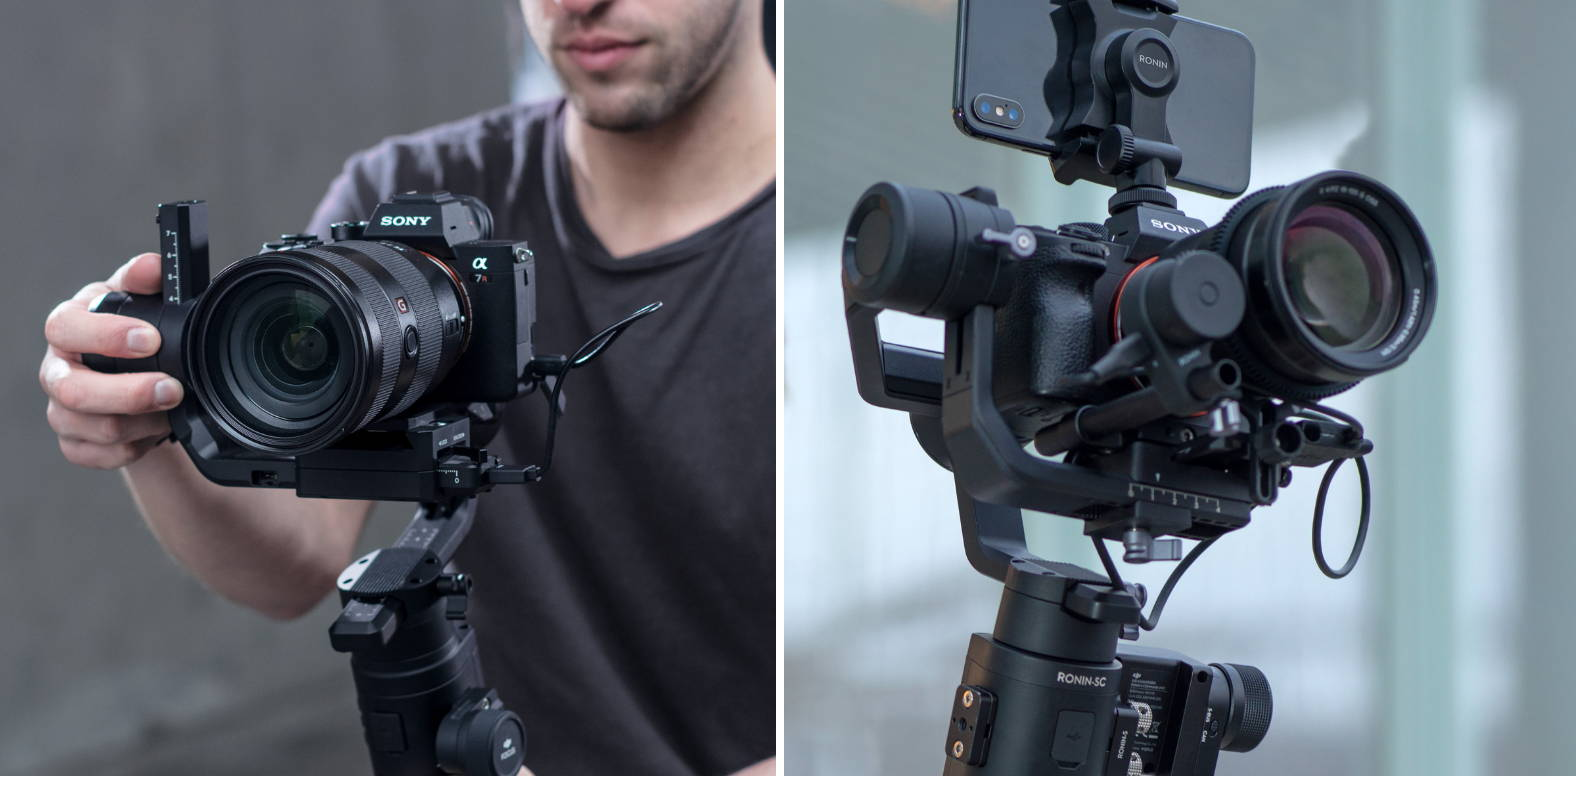 DJI RONIN-S VS DJI RONIN-SC side by side